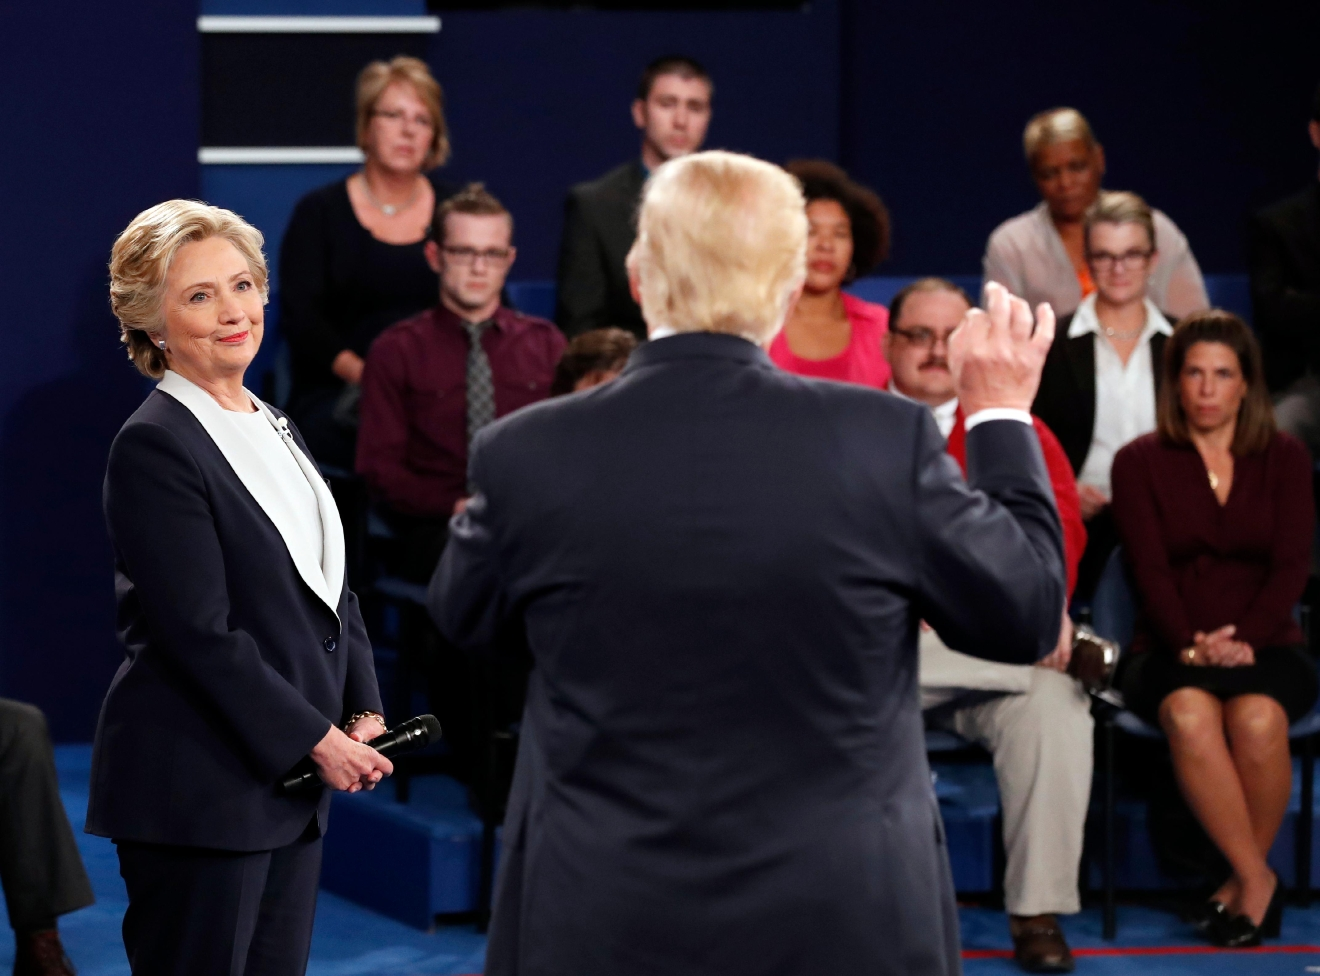 Democratic presidential nominee Hillary Clinton listens to Republican presidential nominee Donald Trump during the second presidential debate at Washington University in St. Louis, Sunday, Oct. 9, 2016. (Rick T. Wilking/Pool via AP)